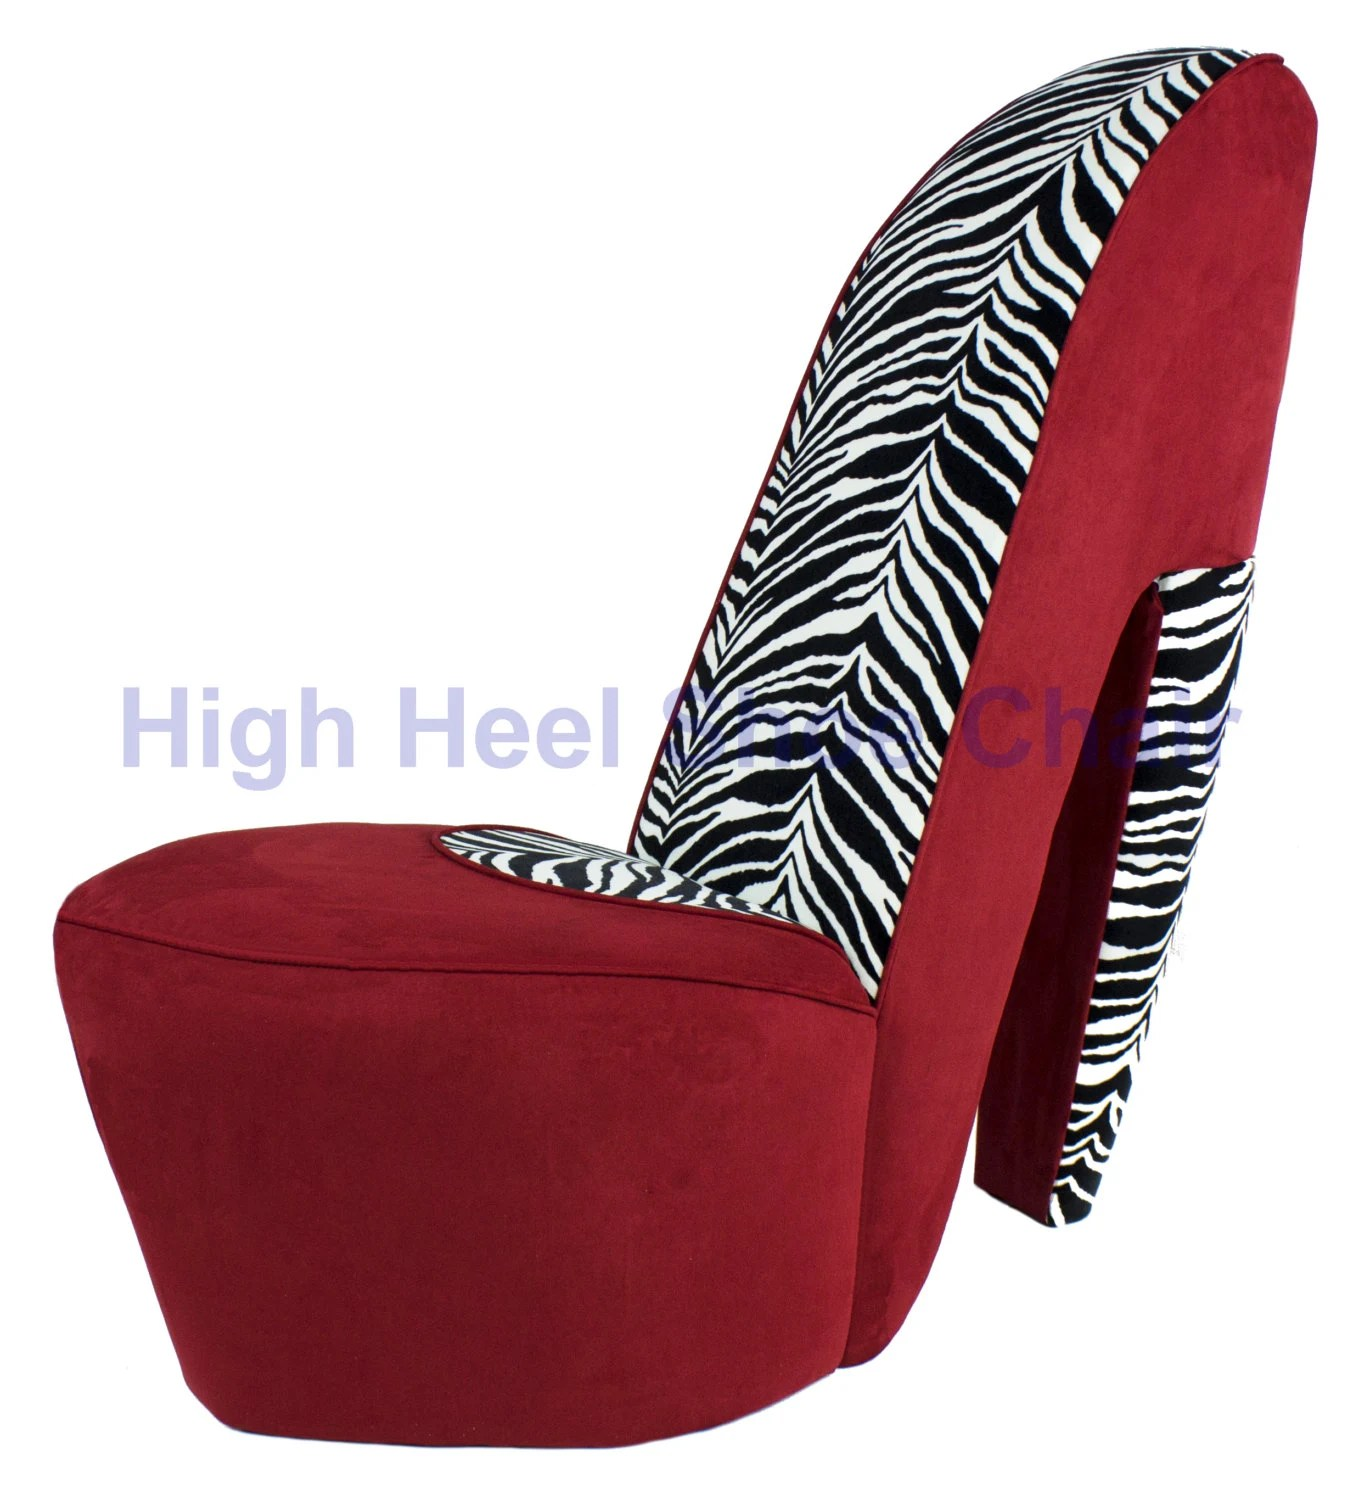 high heel shoe furniture chair motion simulator red and zebra by highheelshoechaircom